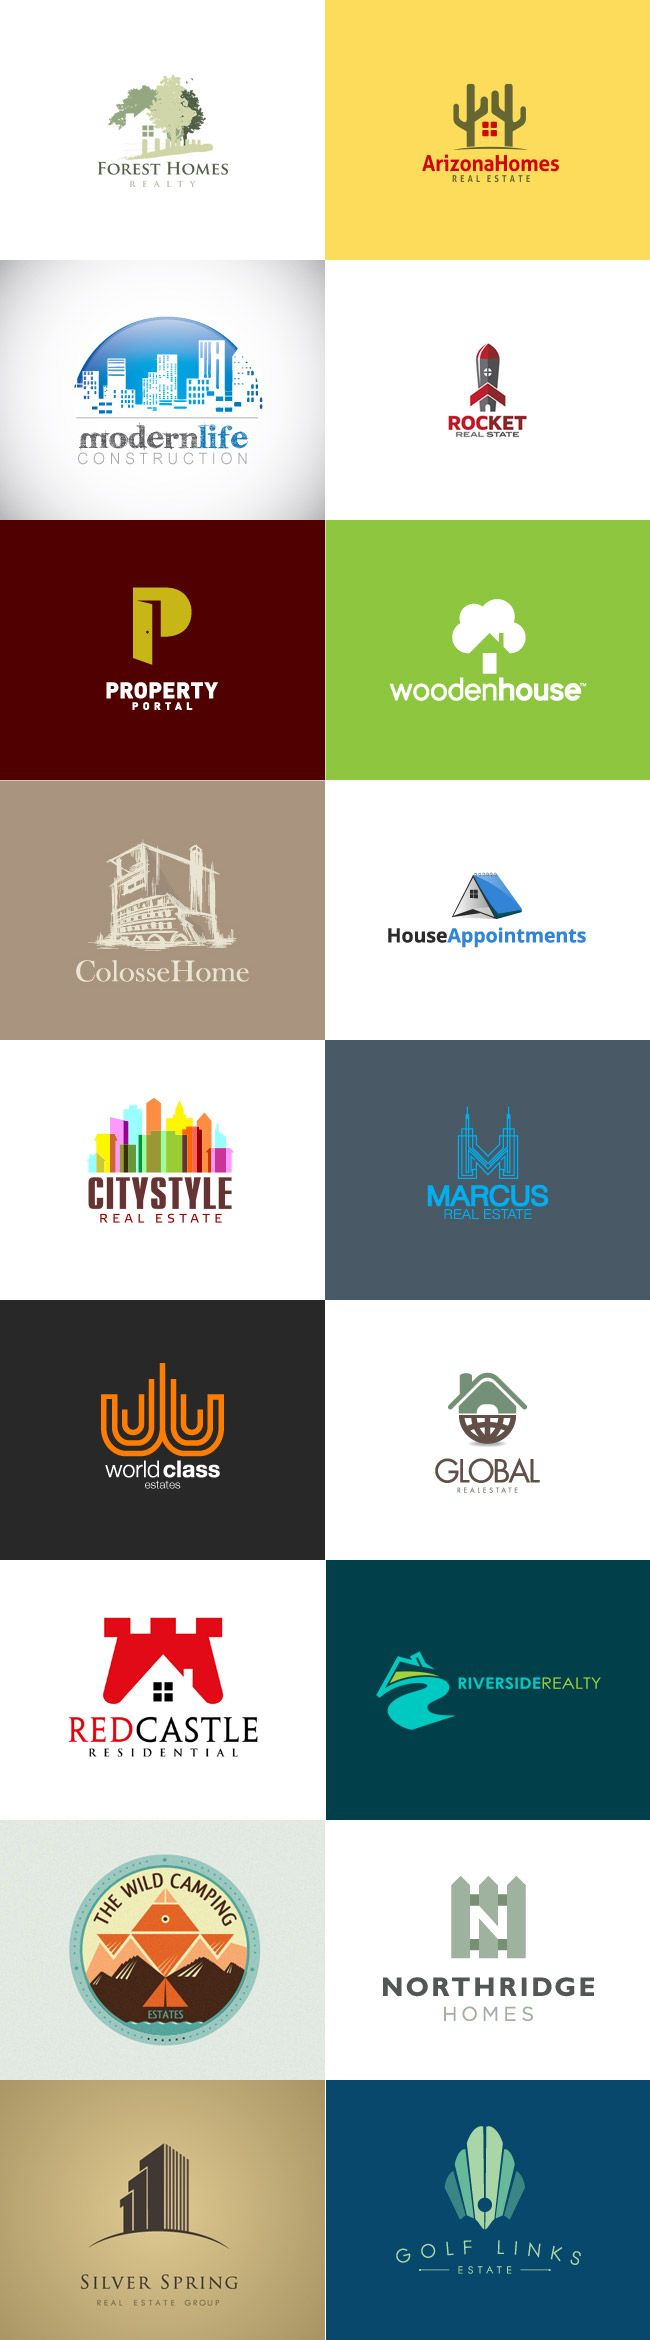 grafiker.de - Logo-Inspiration: Immobilien & Co.